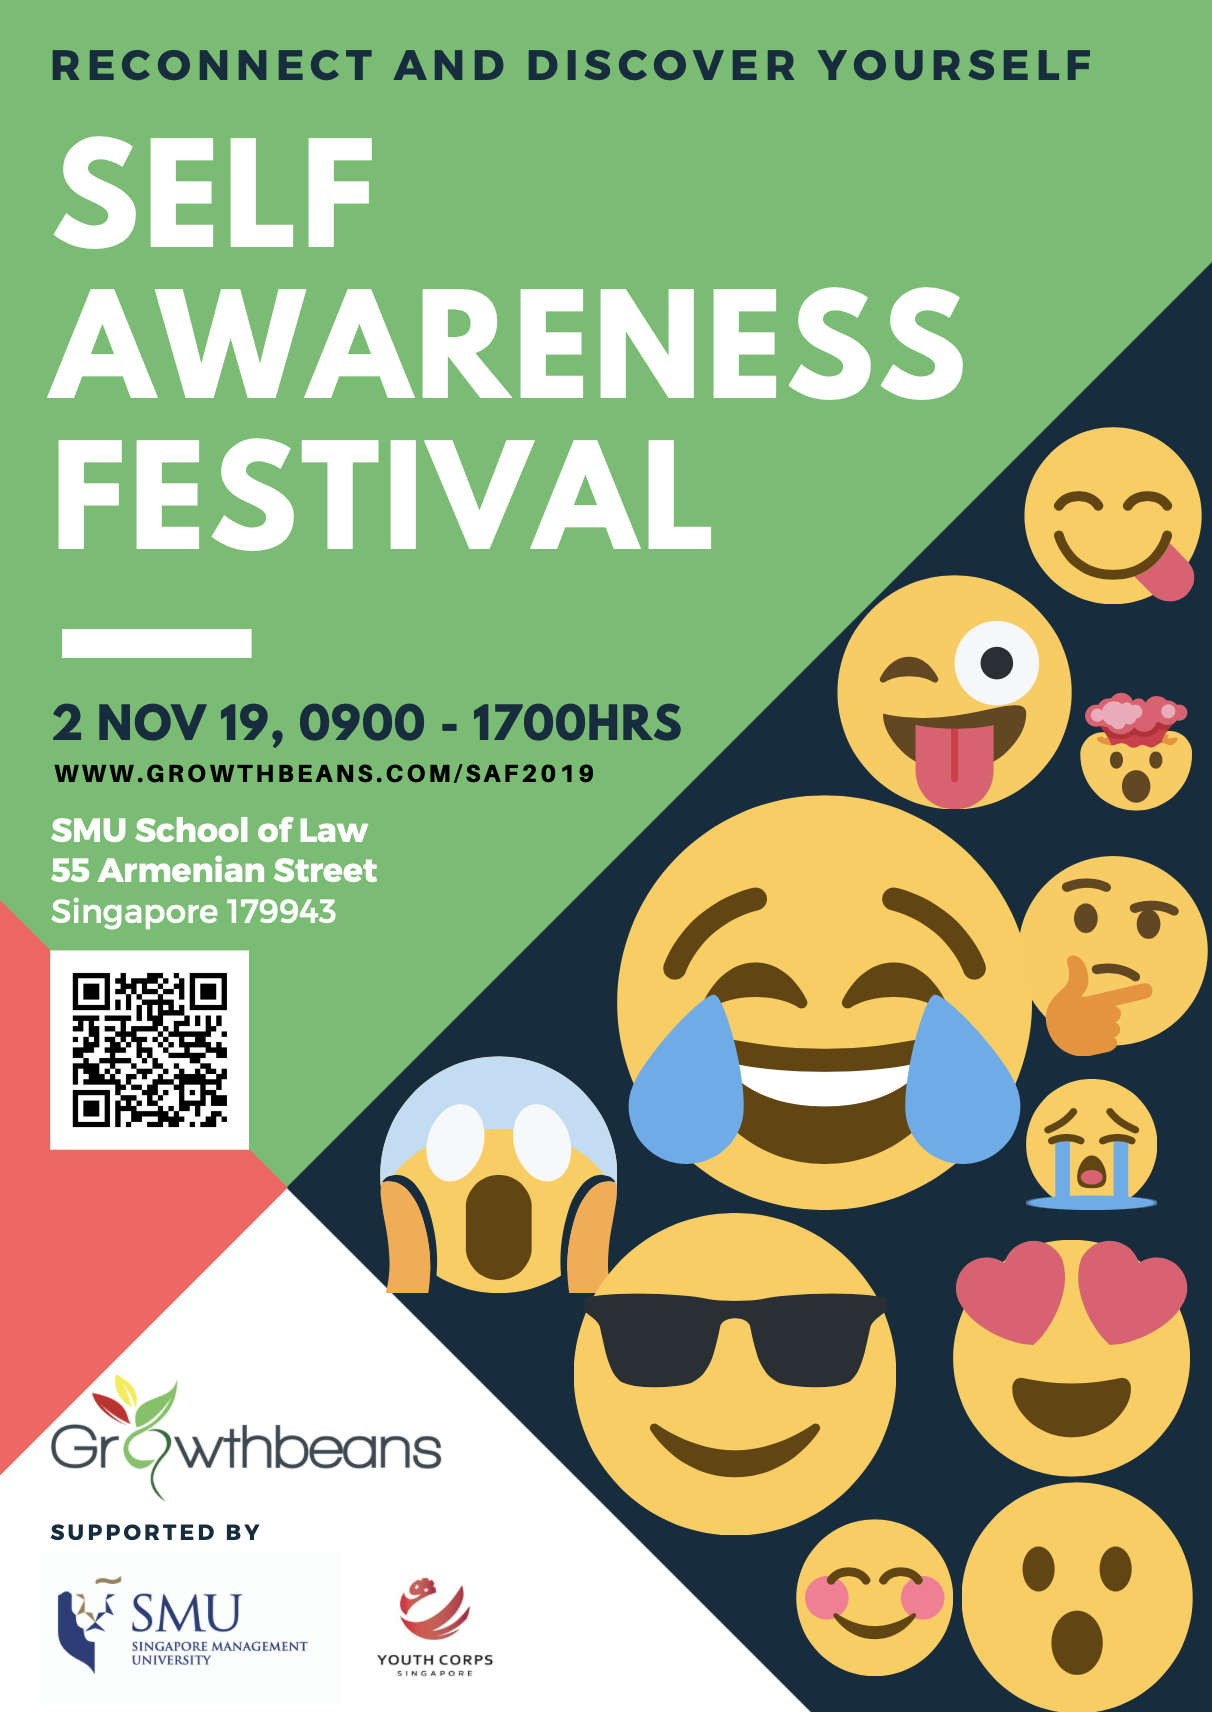 Self Awareness Festival 2 Nov 2019